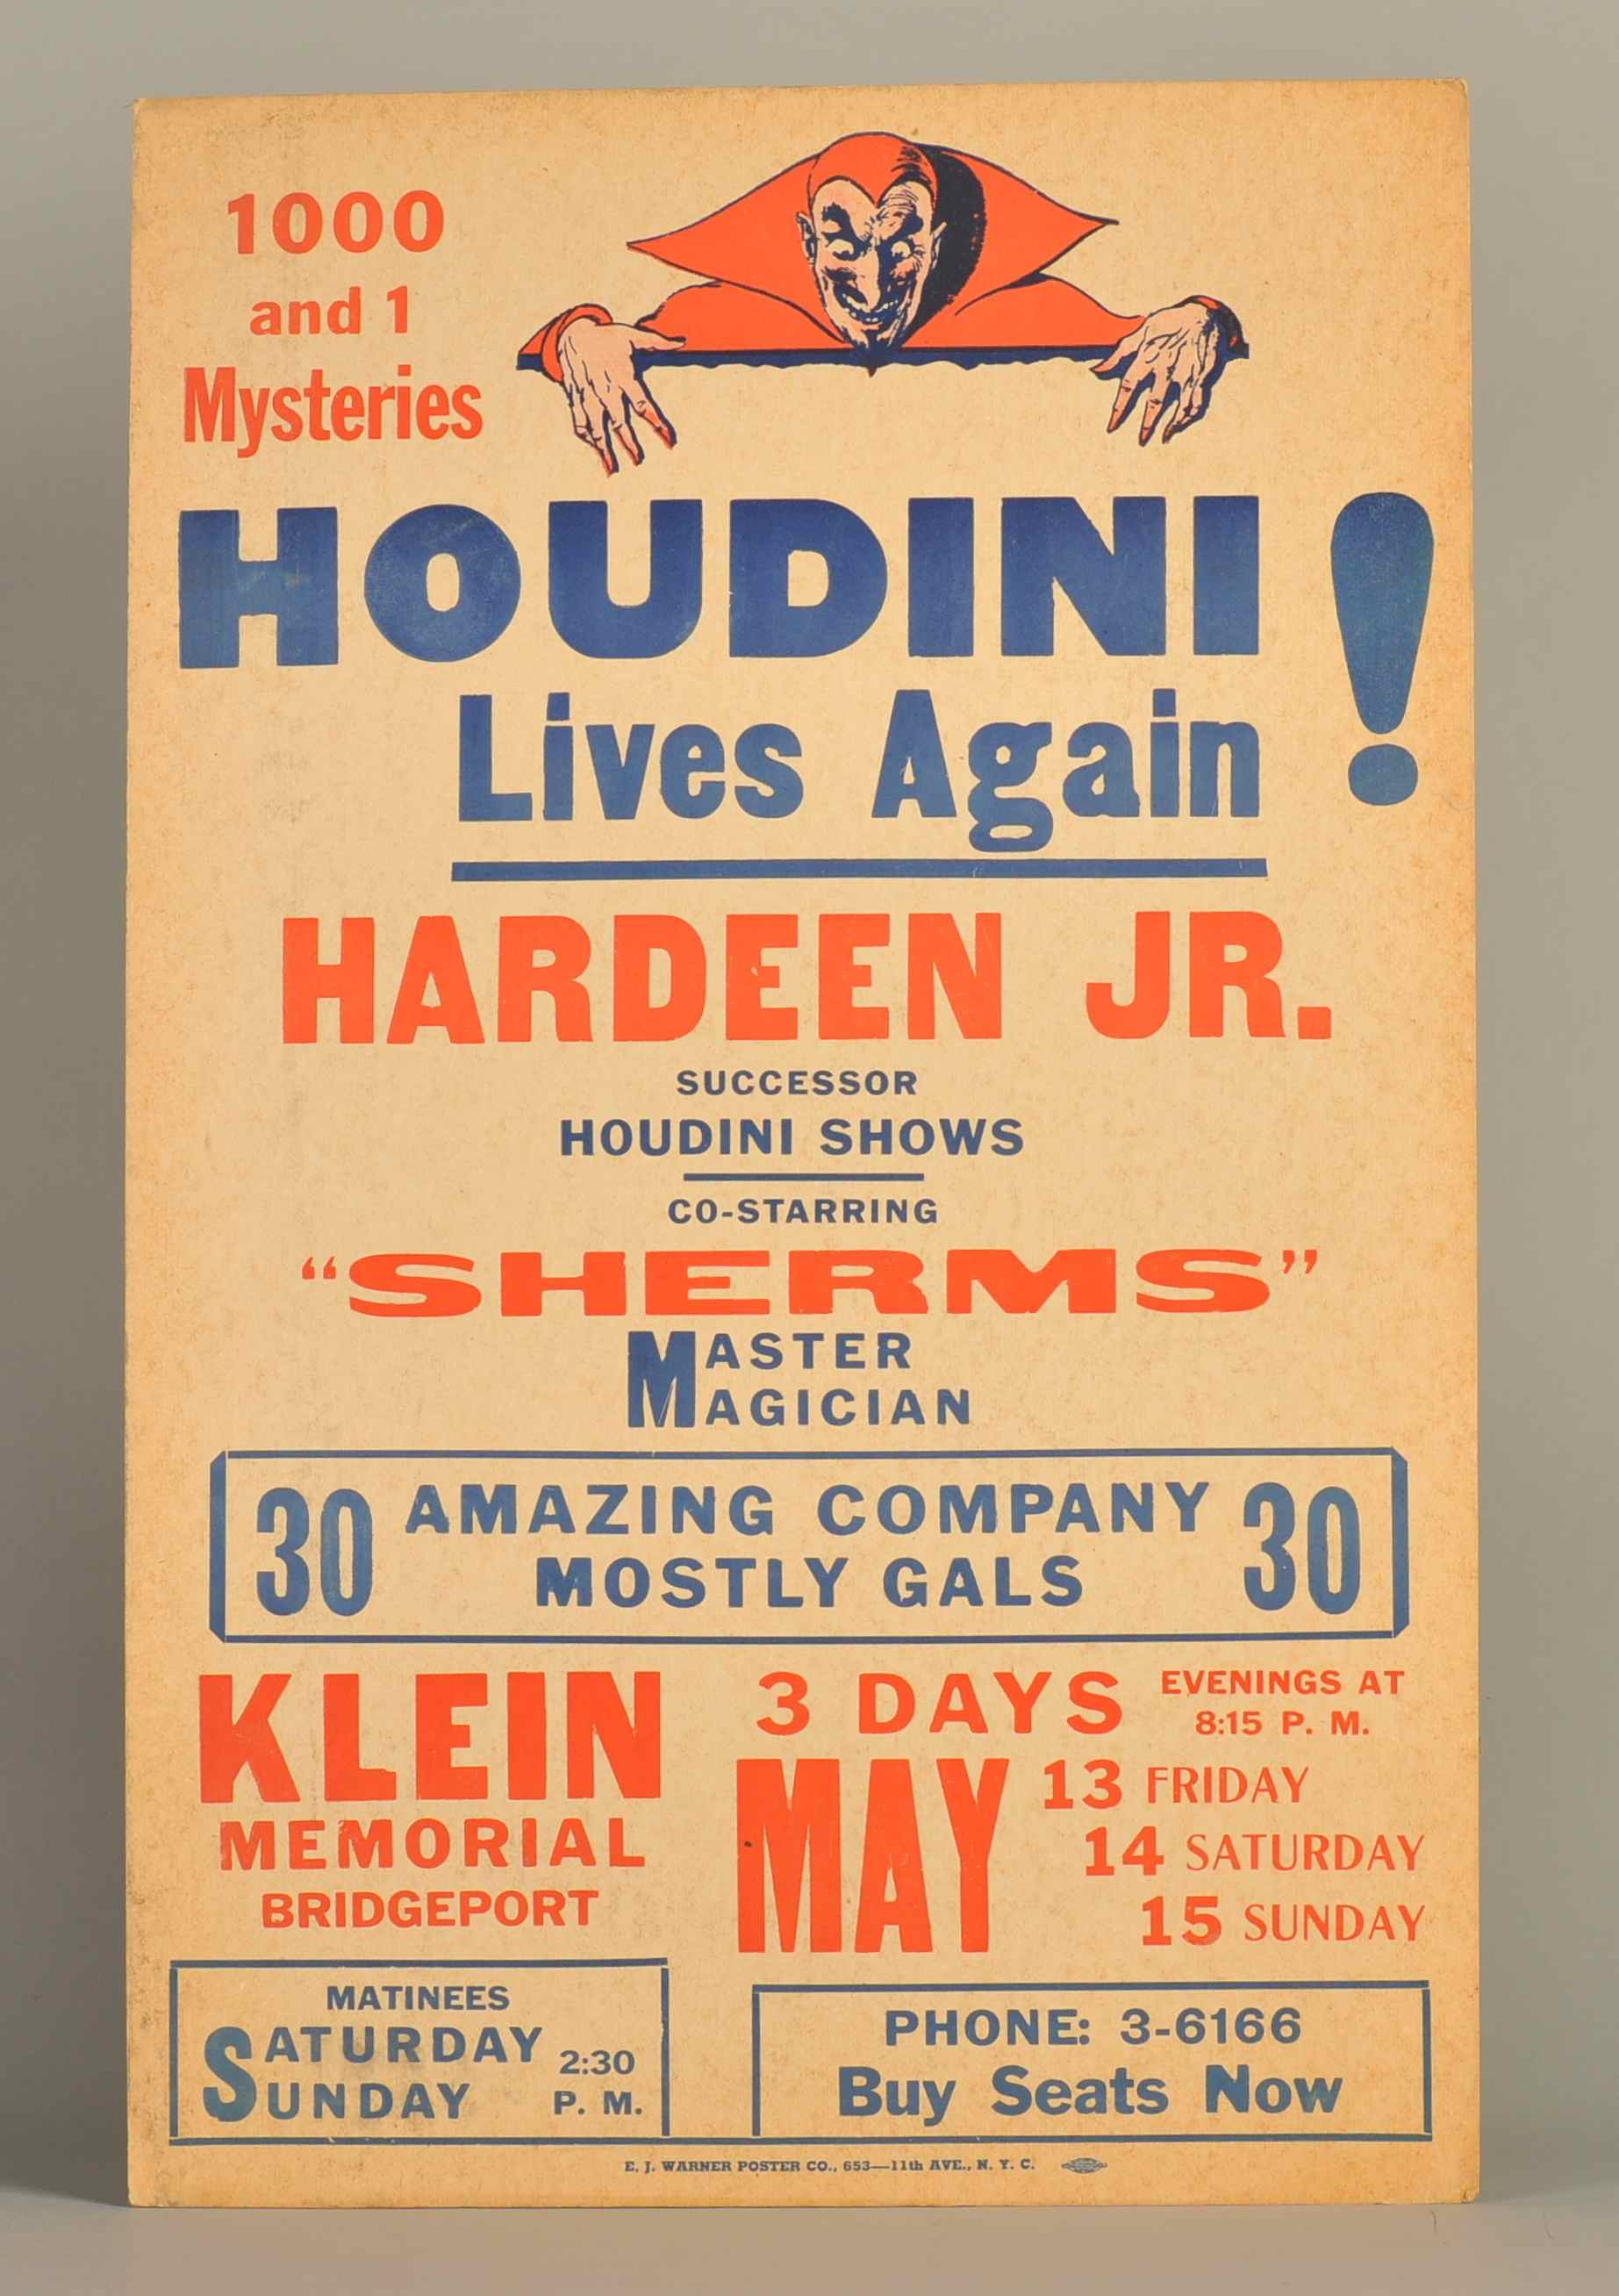 Poster for a performance by Hardeen Jr., successor to Houdini and Hardeen